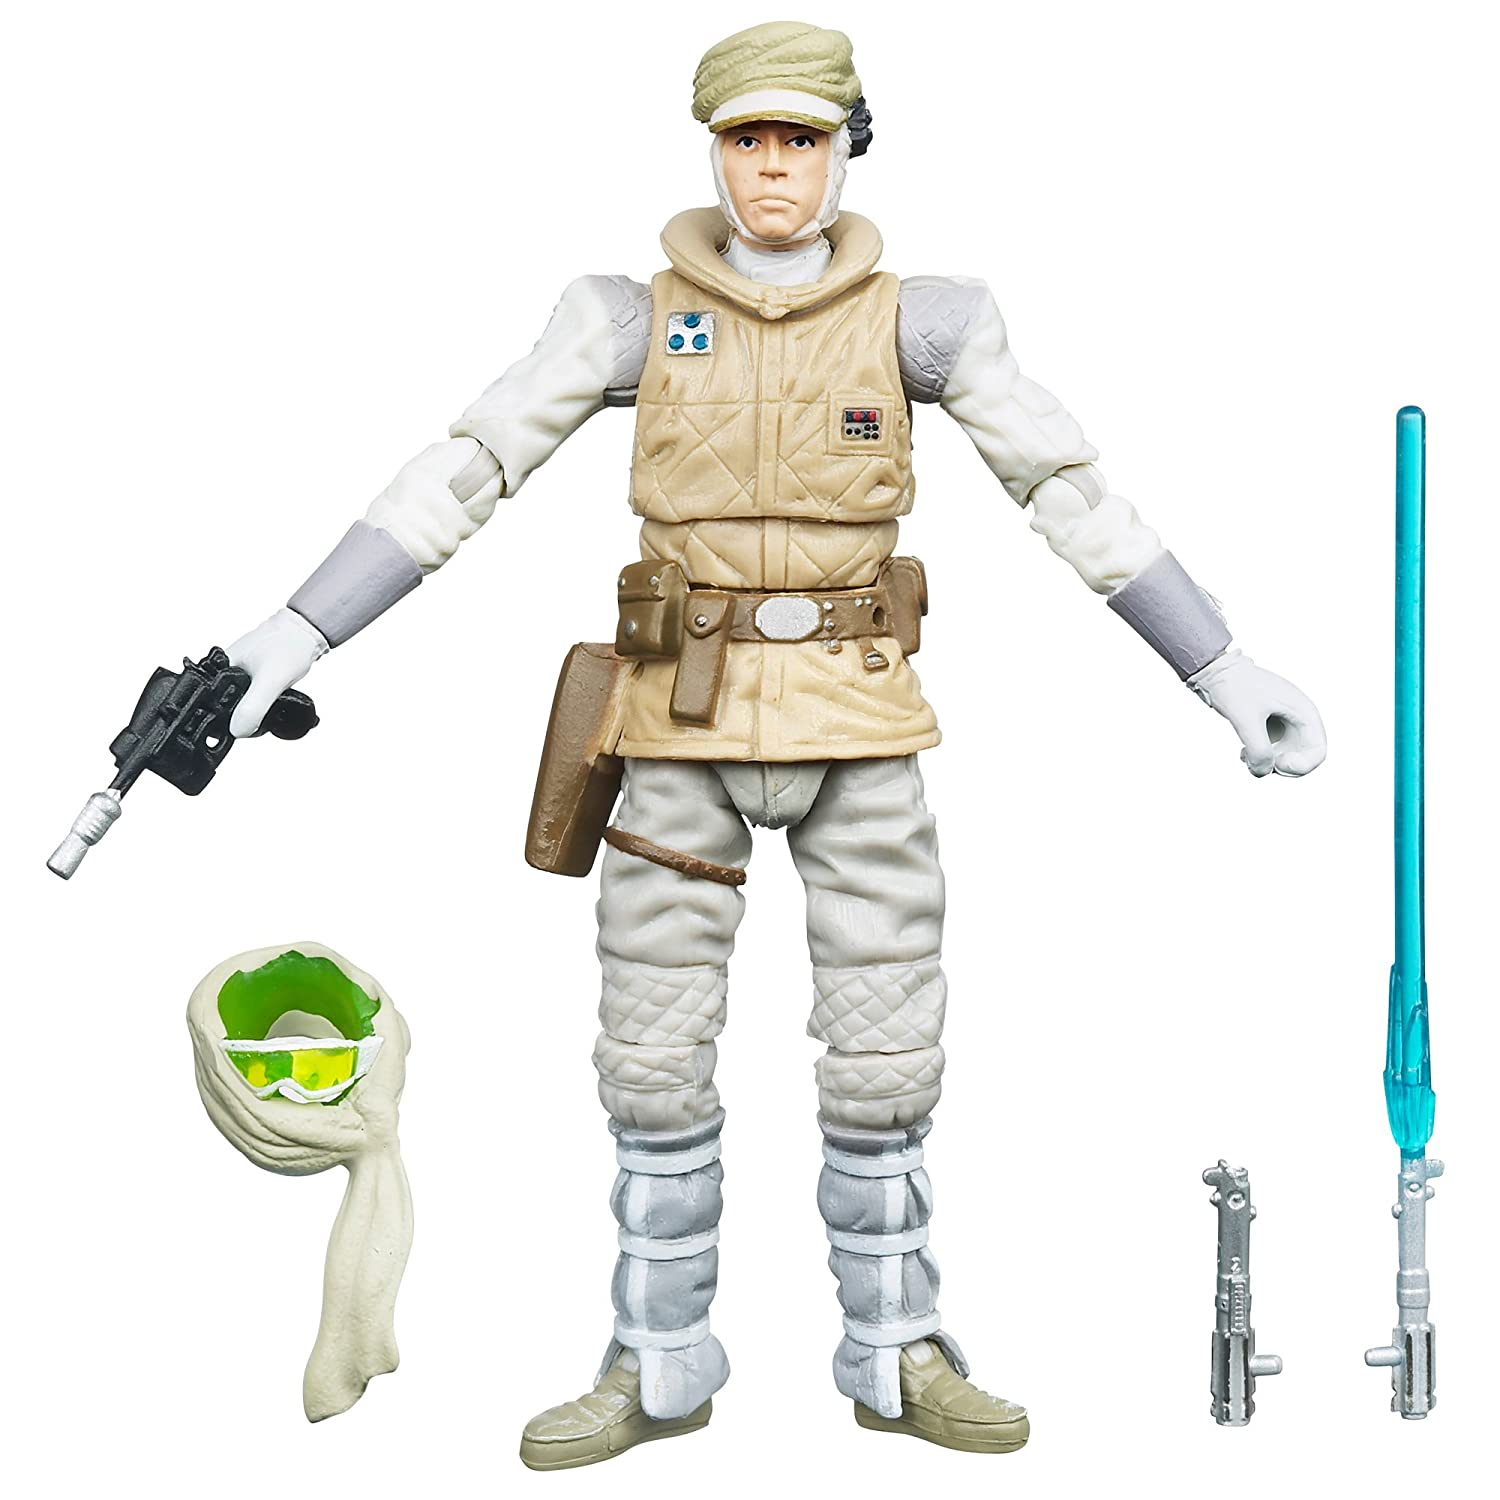 3.75 Inch Hasbro 37511 Star Wars Hoth Outfit The Vintage Collection Action Figure VC95 Luke Skywalker